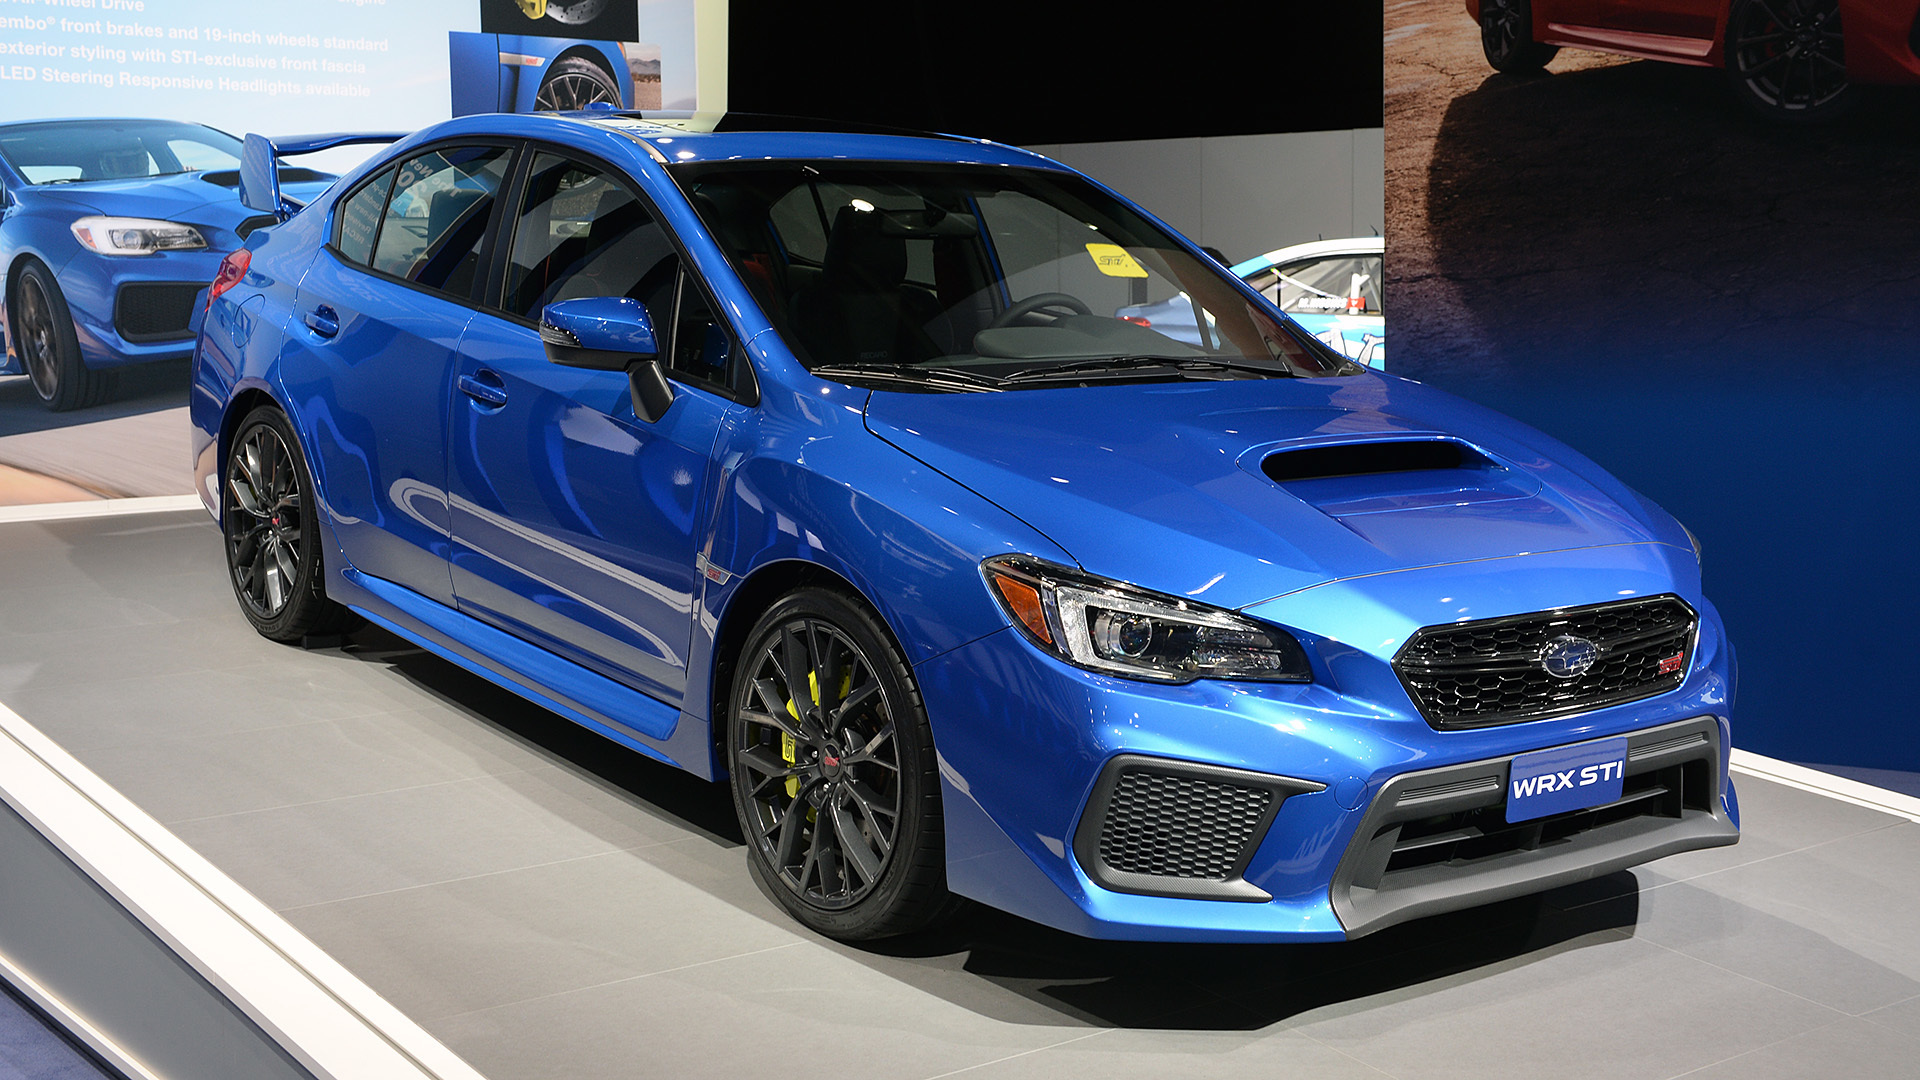 2018 subaru impreza wrx sti detroit 2017 autoblog. Black Bedroom Furniture Sets. Home Design Ideas